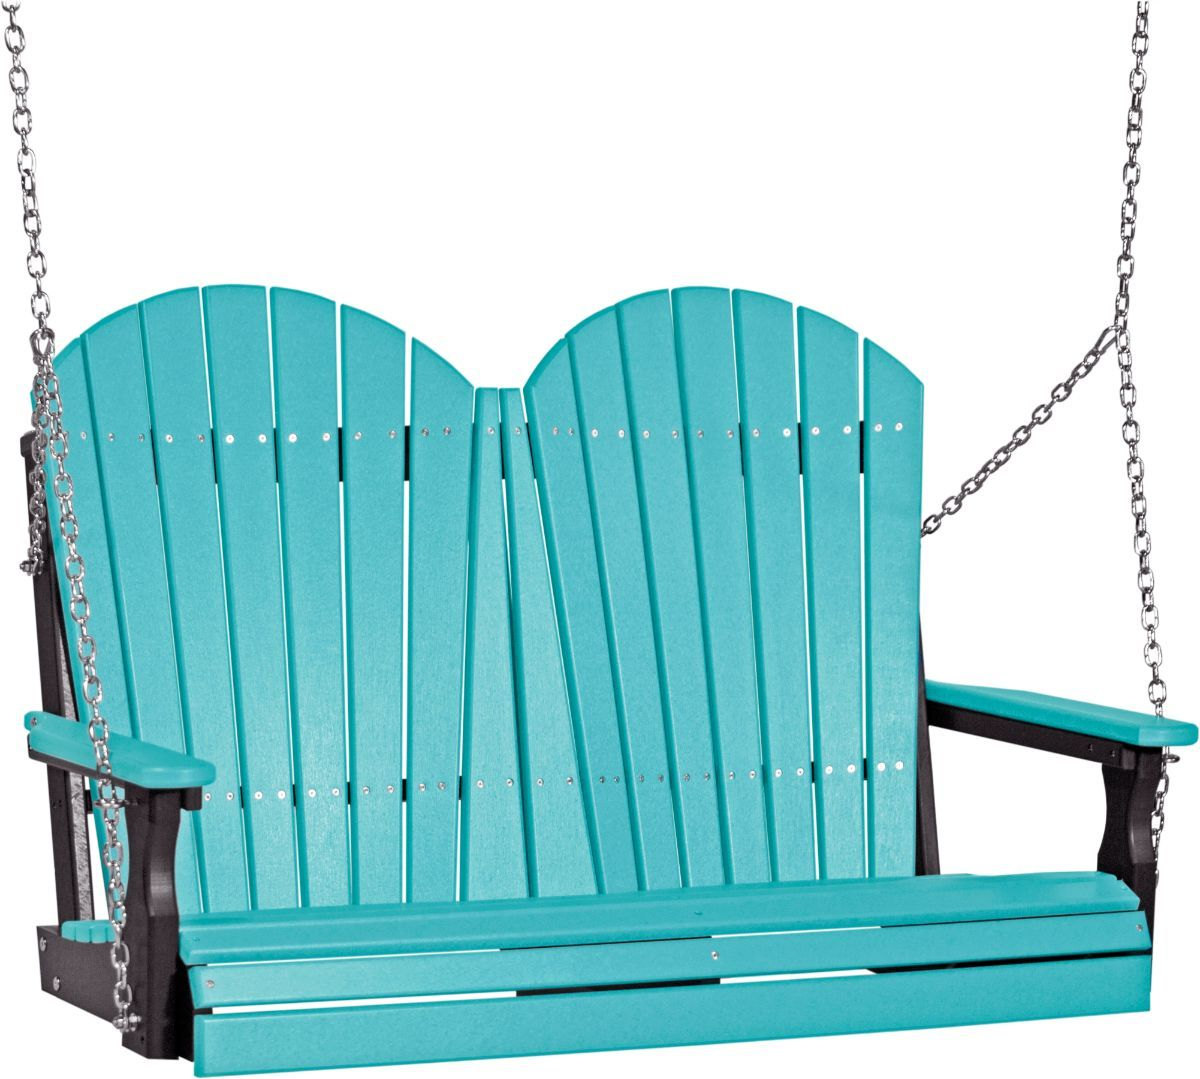 Aruba Blue and Black Tahiti Adirondack Porch Swing